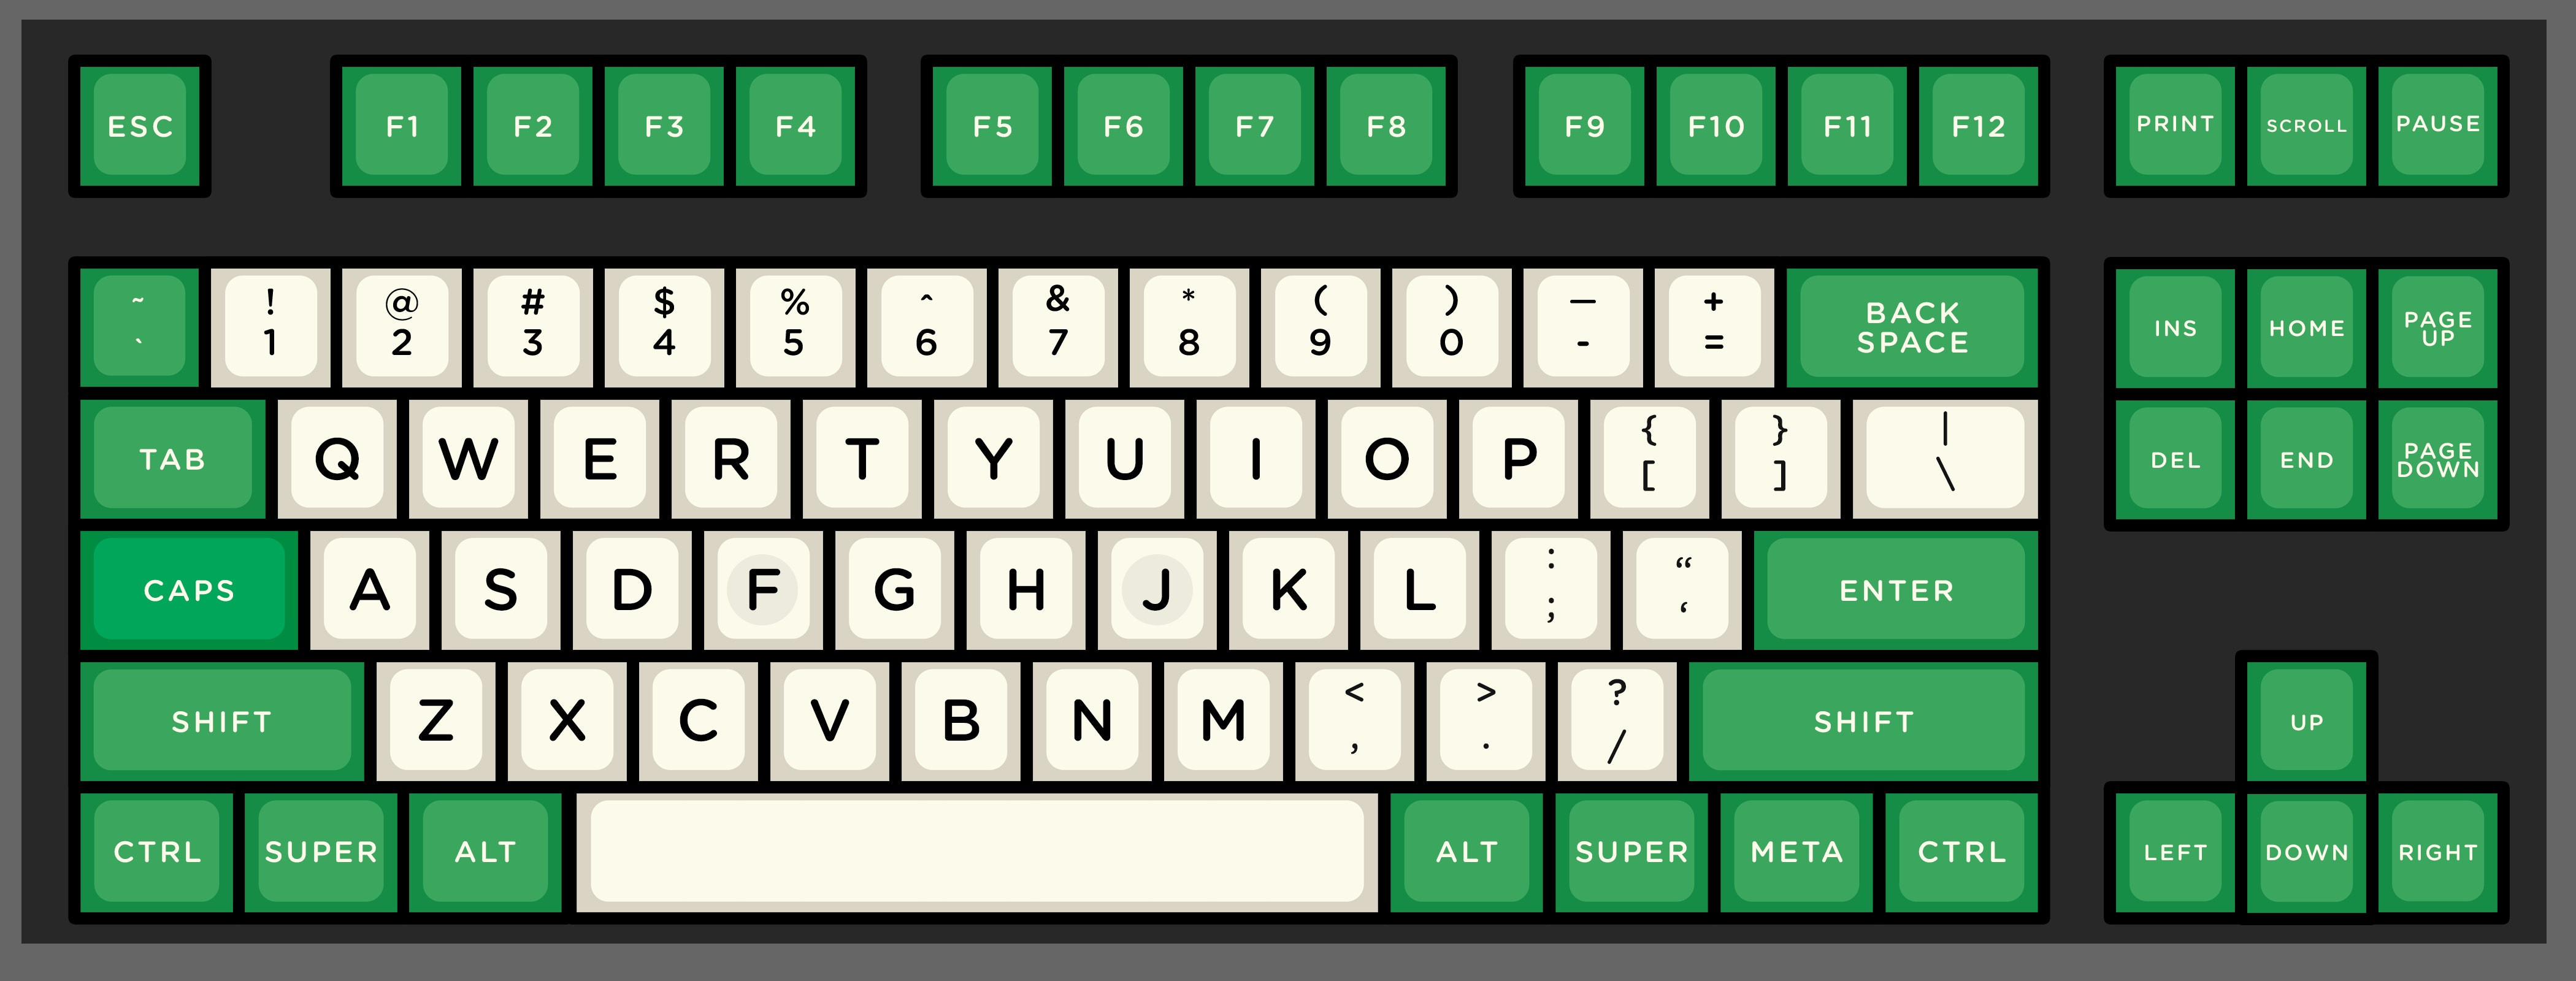 Just the Green Keys, no Alpha's